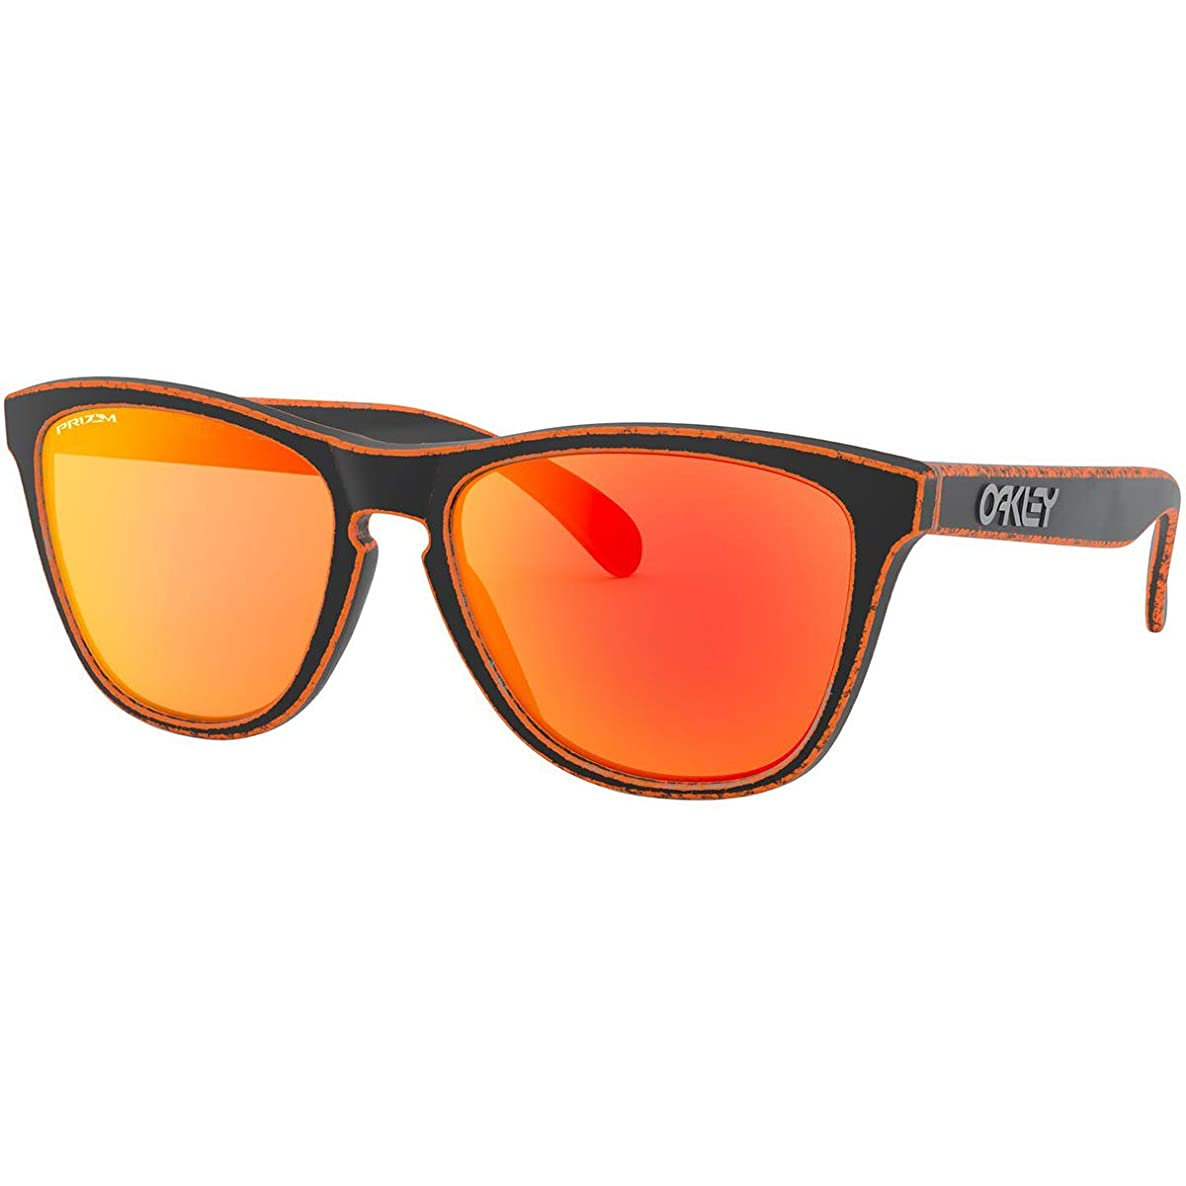 Oakley Men's Frogskins Sunglasses,OS,Raceworn Orange/Prizm Ruby